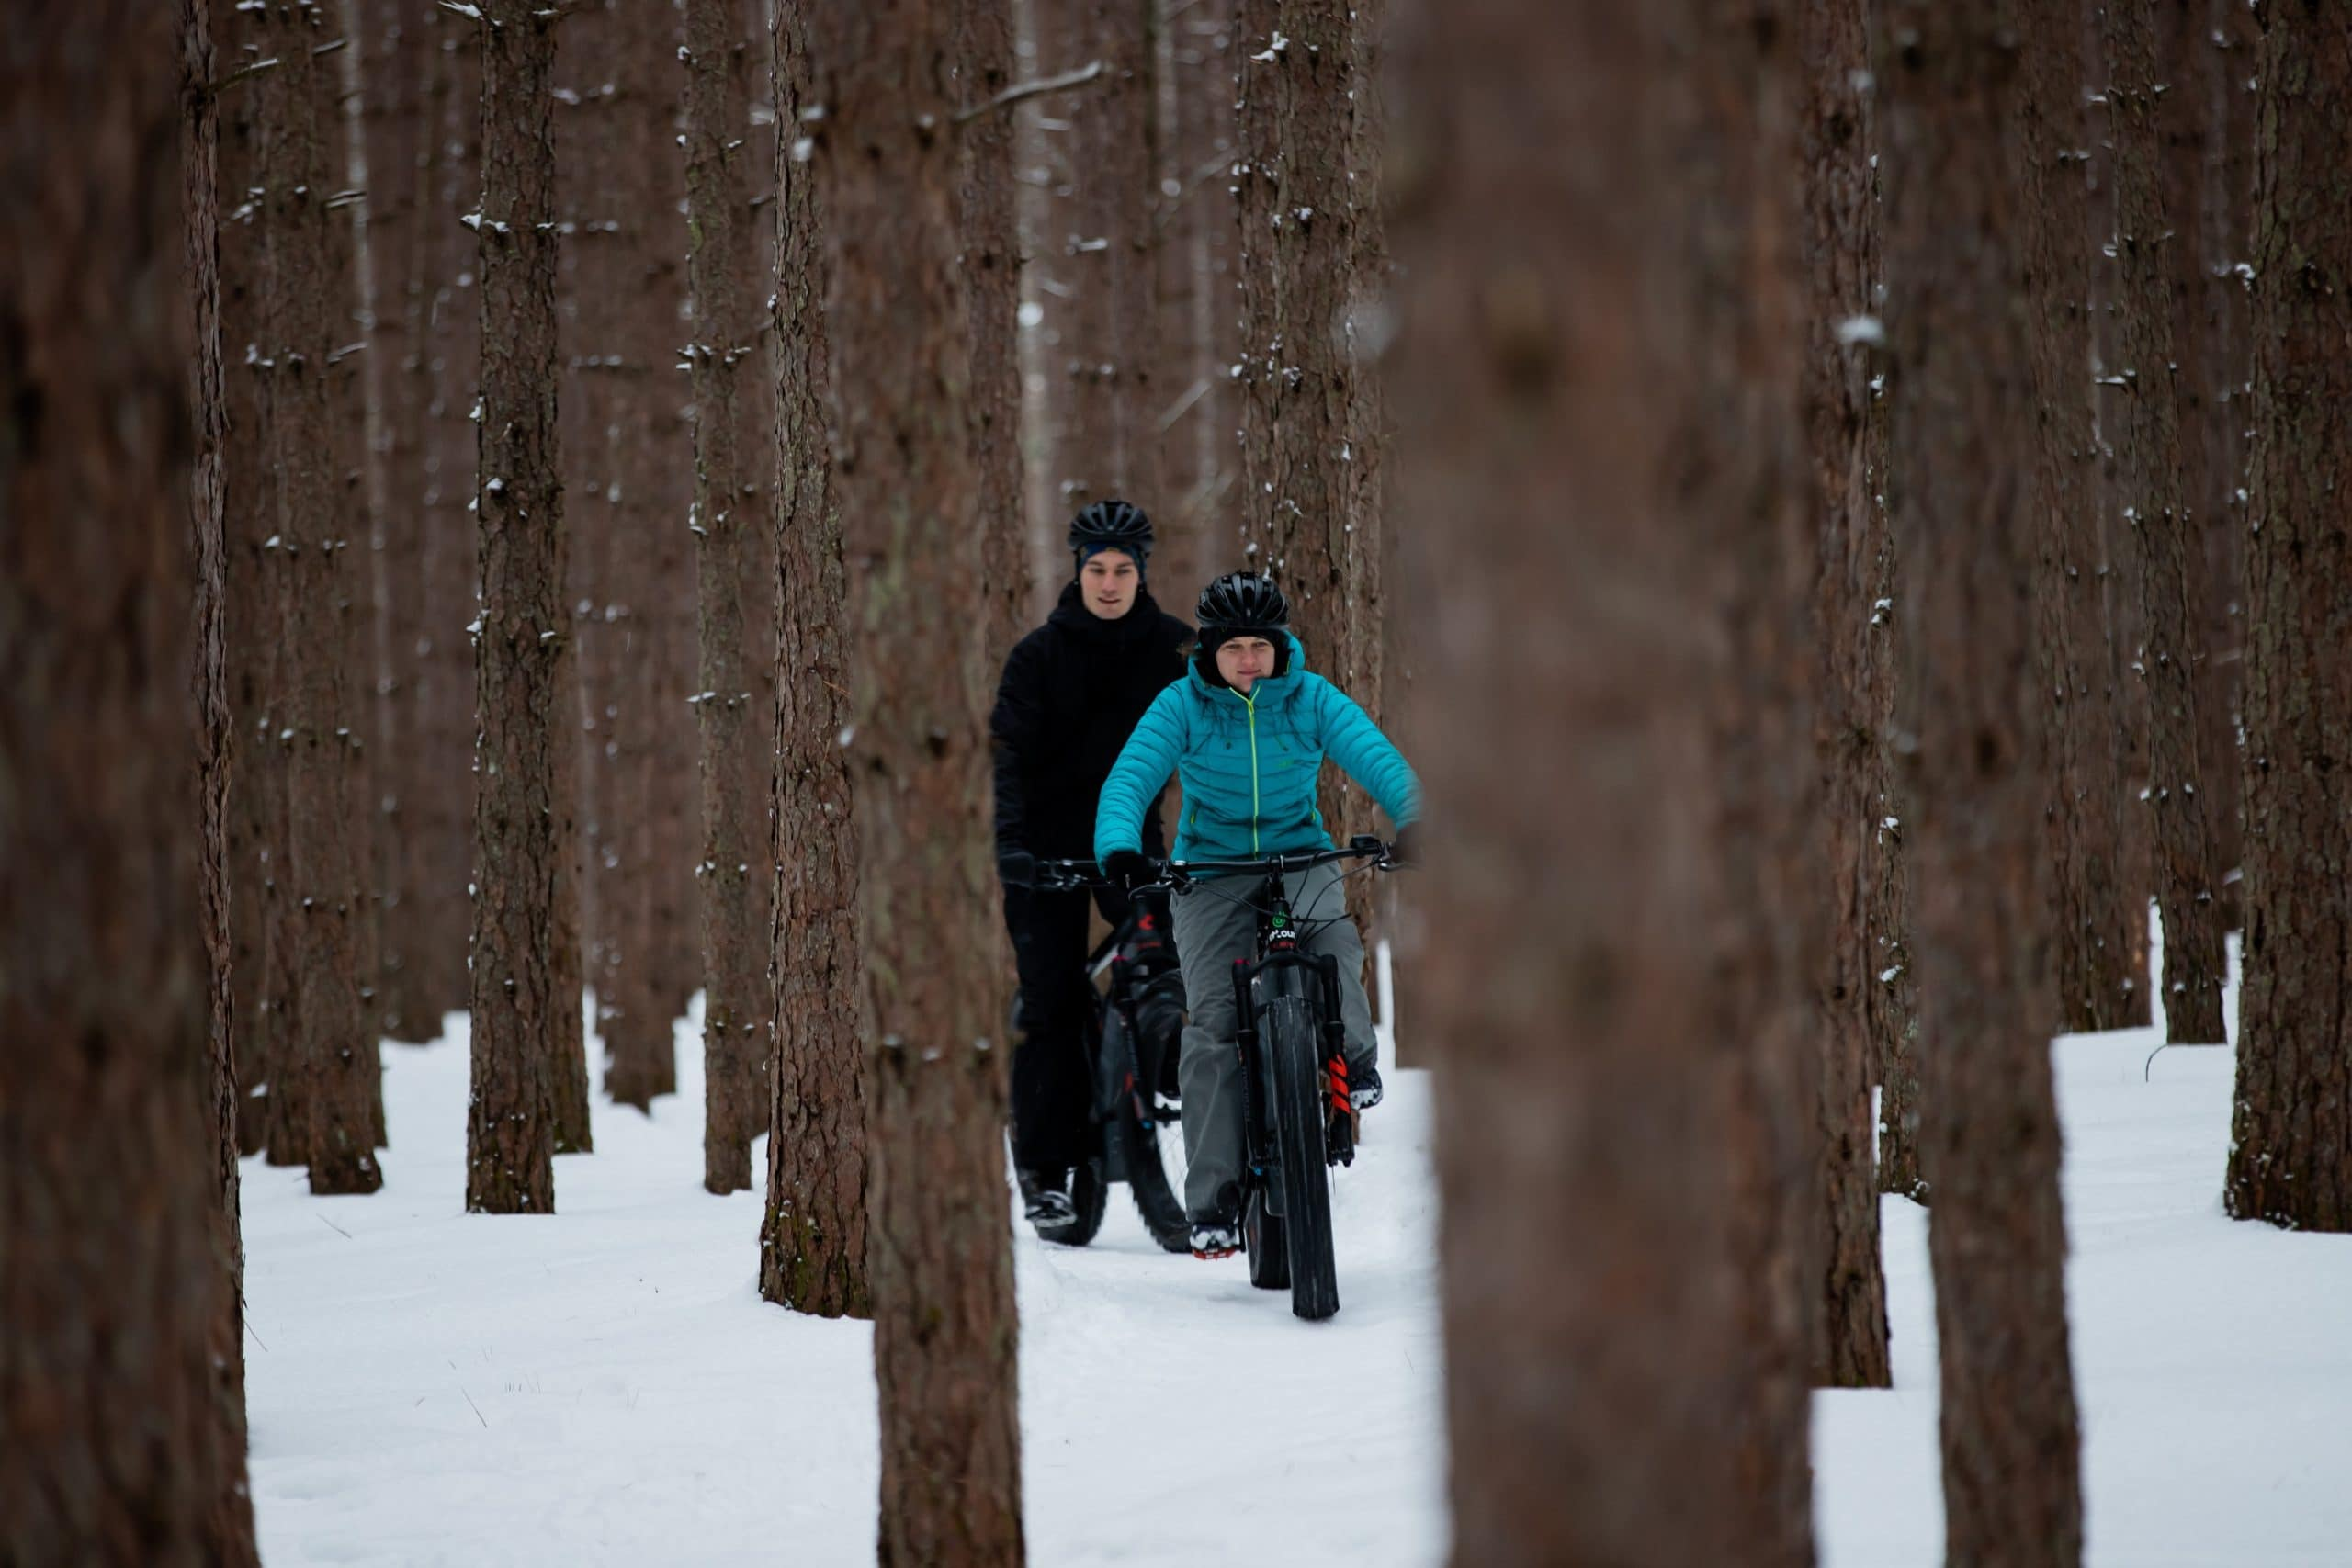 Fatbike Mont-Tremblant - activity | D-Tour